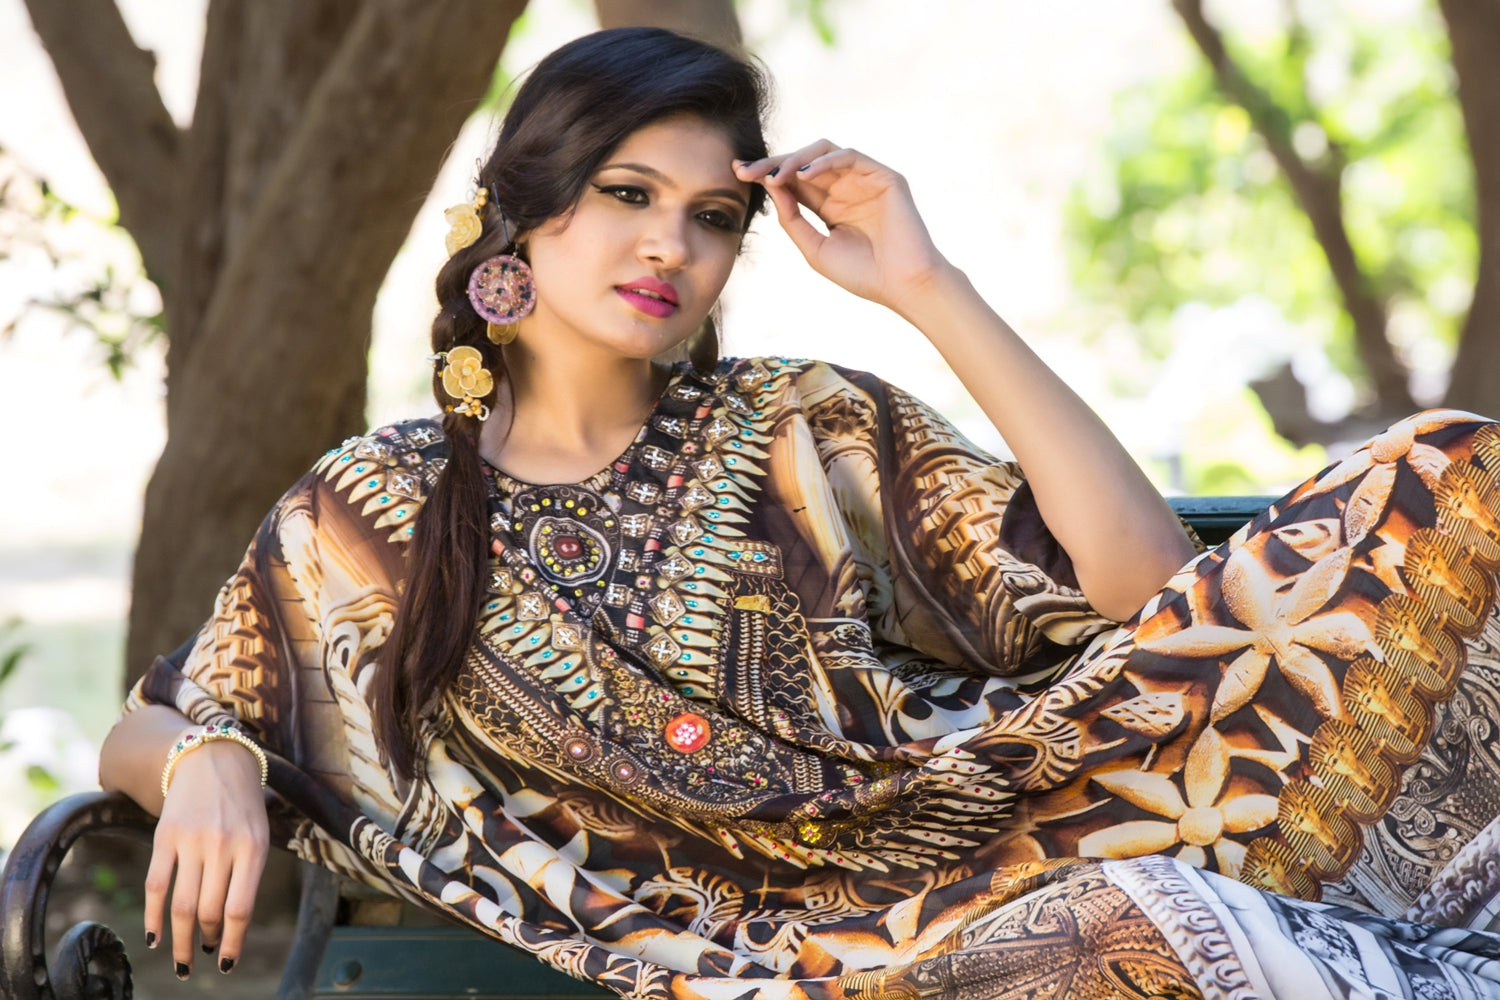 Embossed Artistic Tribal Geometric Printed Maxi Silk kaftans with embroidered beaded round neck